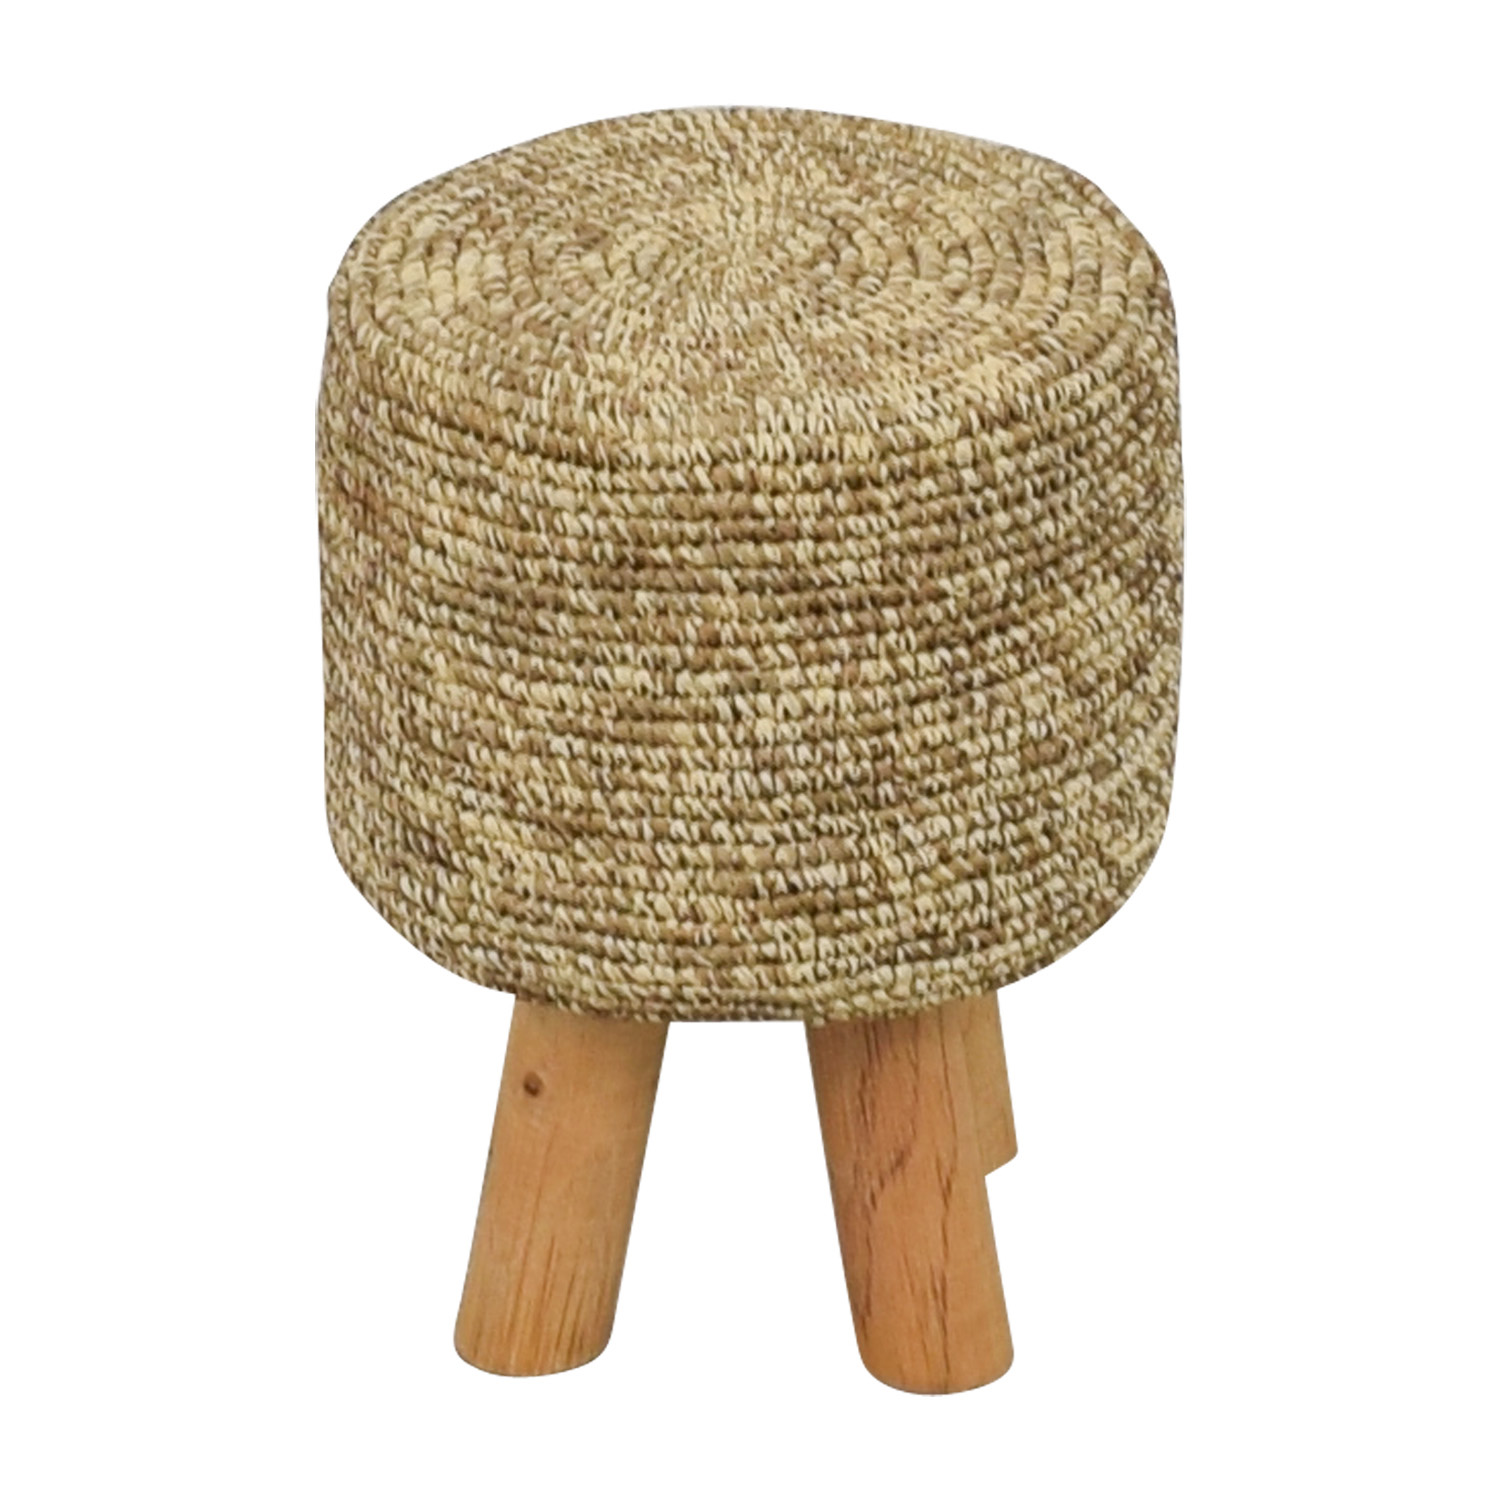 Wool and Wood Short Stool on sale